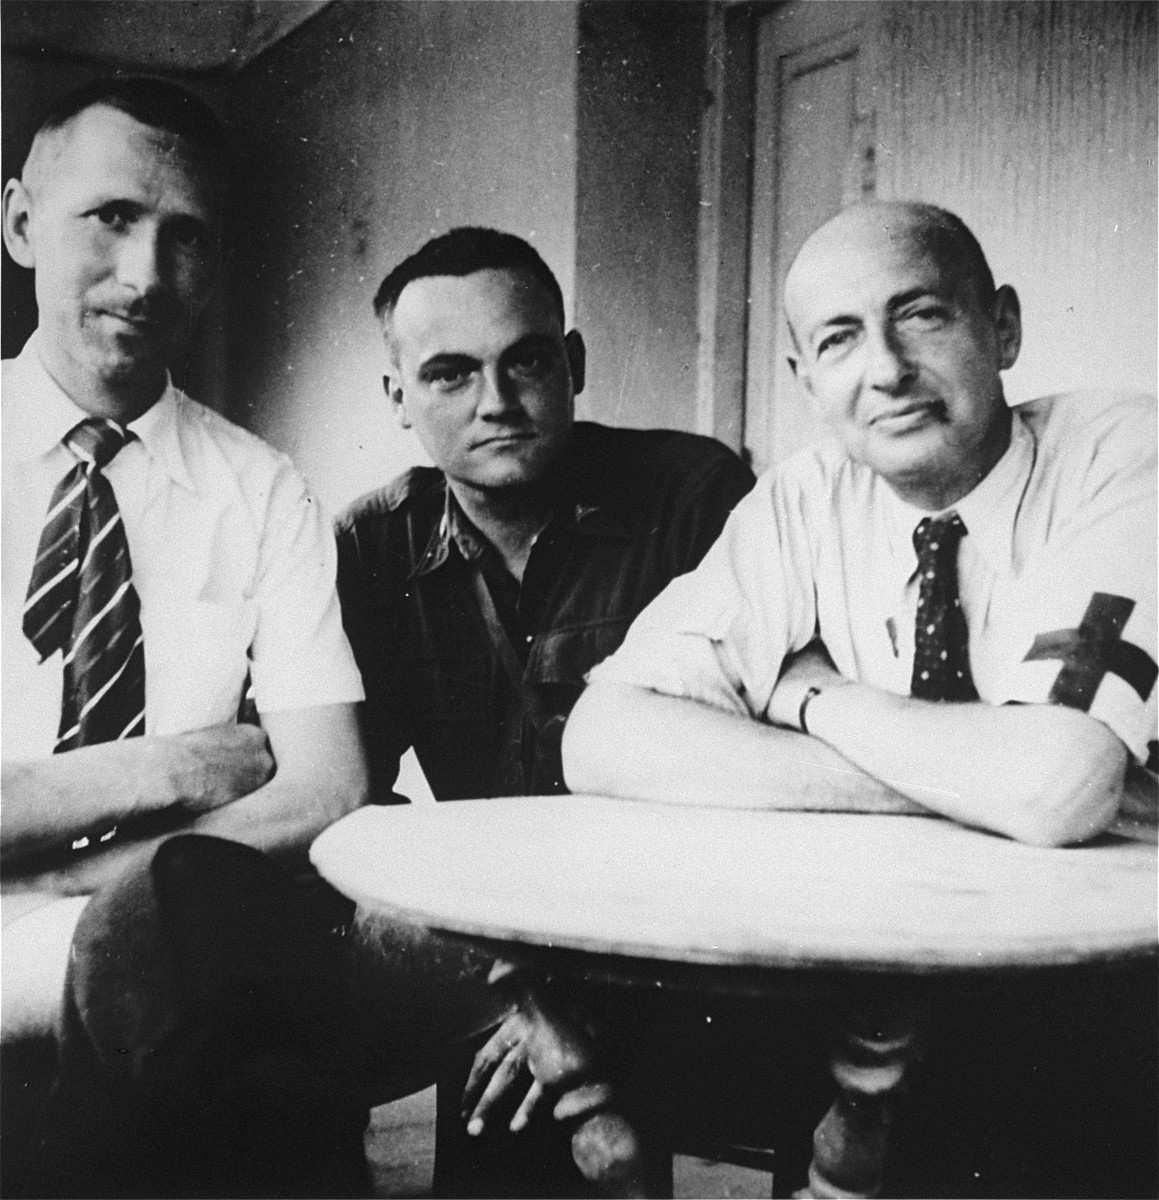 Portrait of three physicians, two of them former concentration camp prisoners, who aided survivors from the Ebensee concentration camp at an American military field hospital.  Pictured are former prisoners, Lt. Col. Sanford of the 30th Field Hospital, originally from Belgium (left), and Dr. Gilbert Debrise (Dreyfus), originally from Paris (middle).